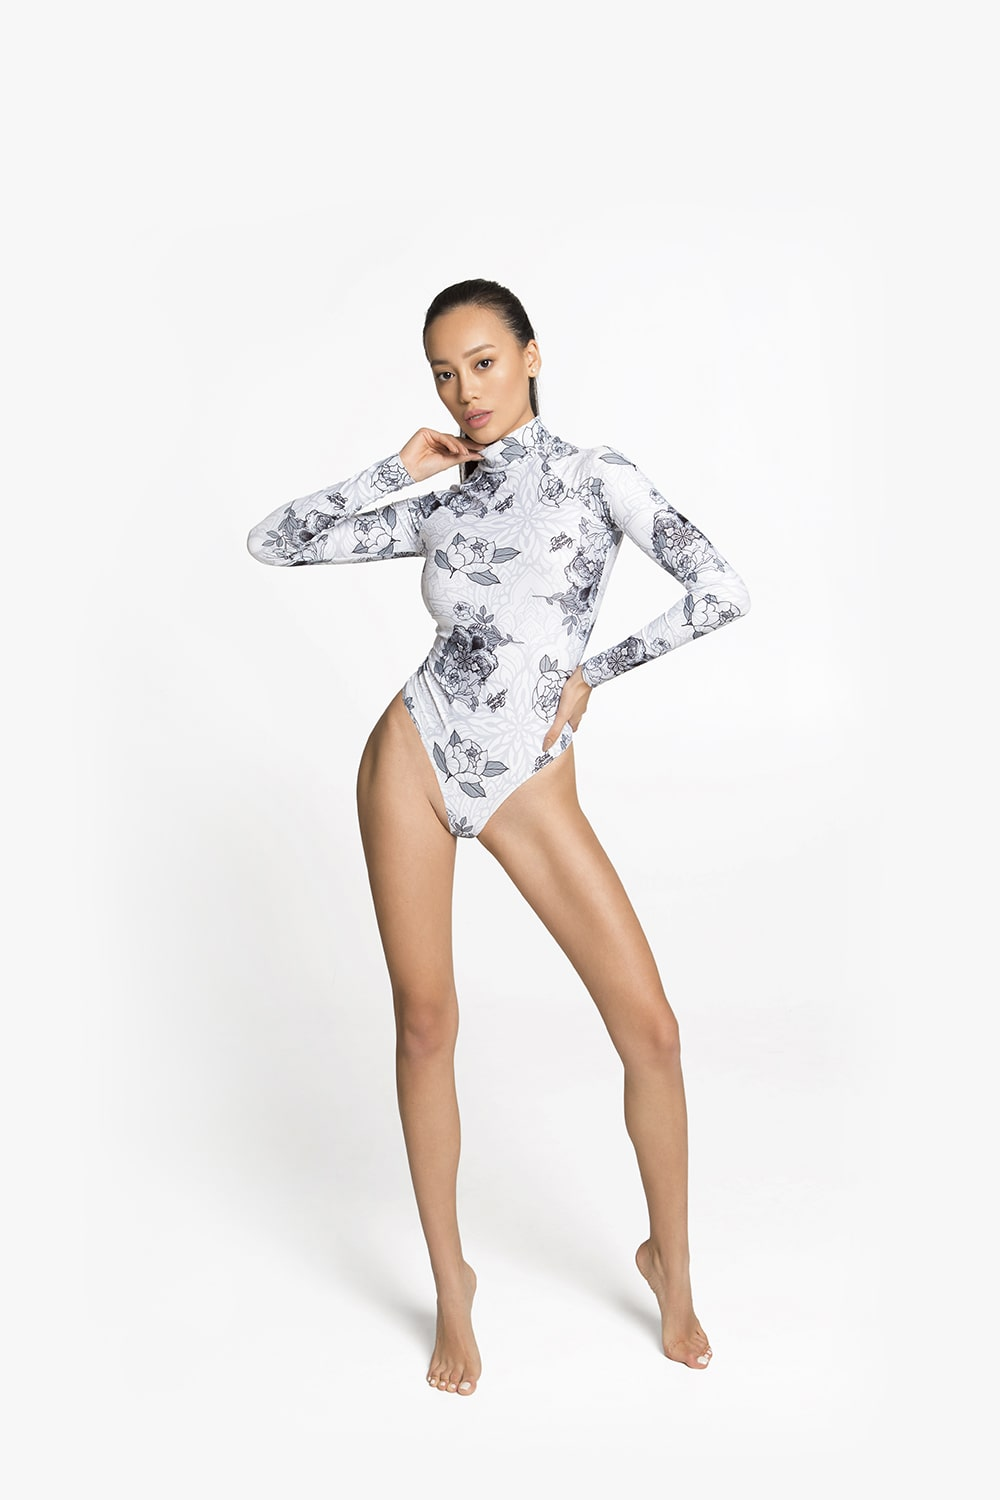 BODYSUIT BY SASHA TATTOOING - Designed for Fitness